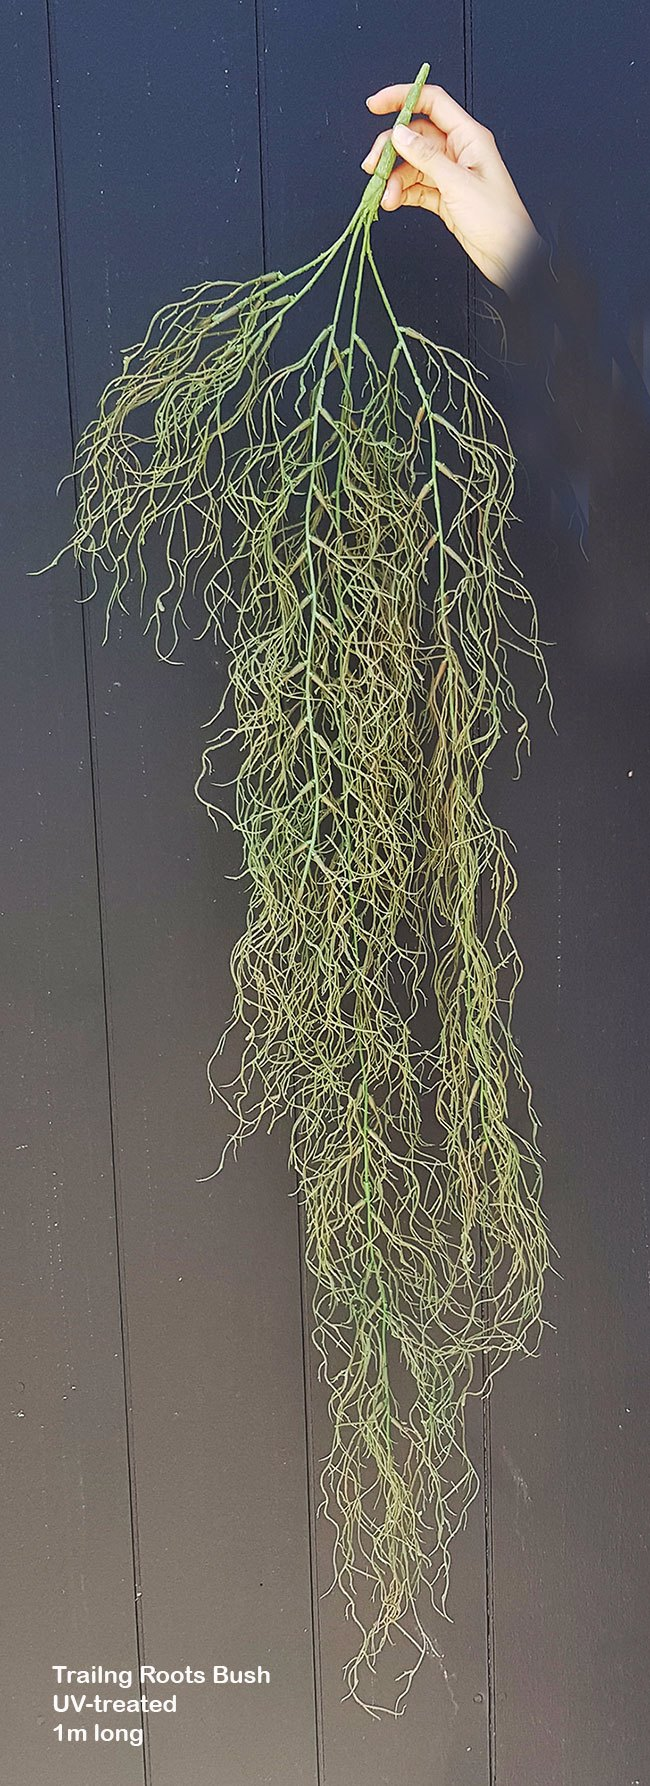 Trailing Roots Bush